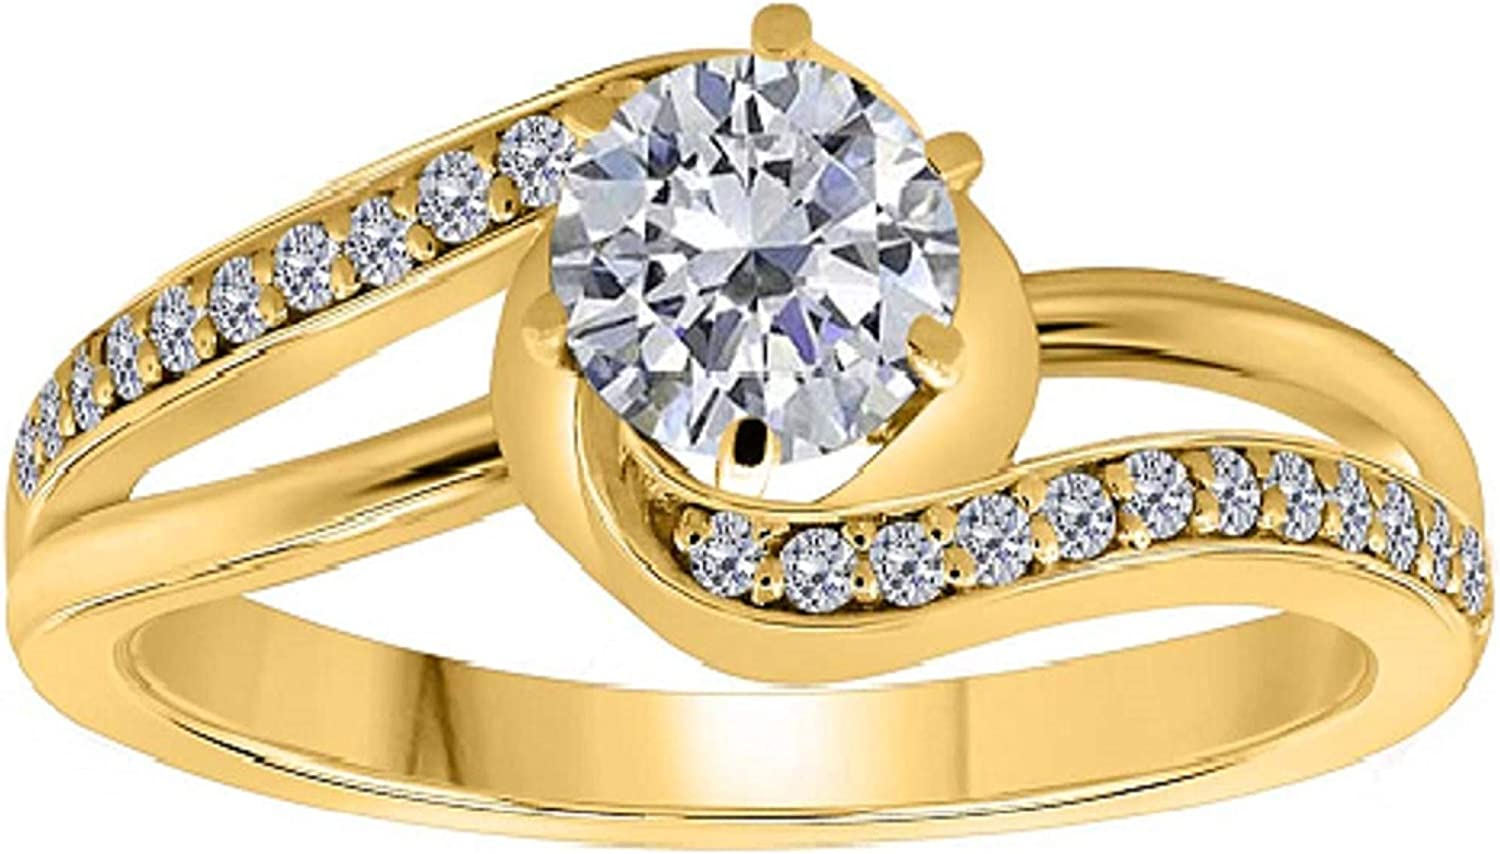 AoneJewelry 0.75 Daily bargain sale Carat Diamond 18K In Solid Sale Special Price Yell Engagement Ring